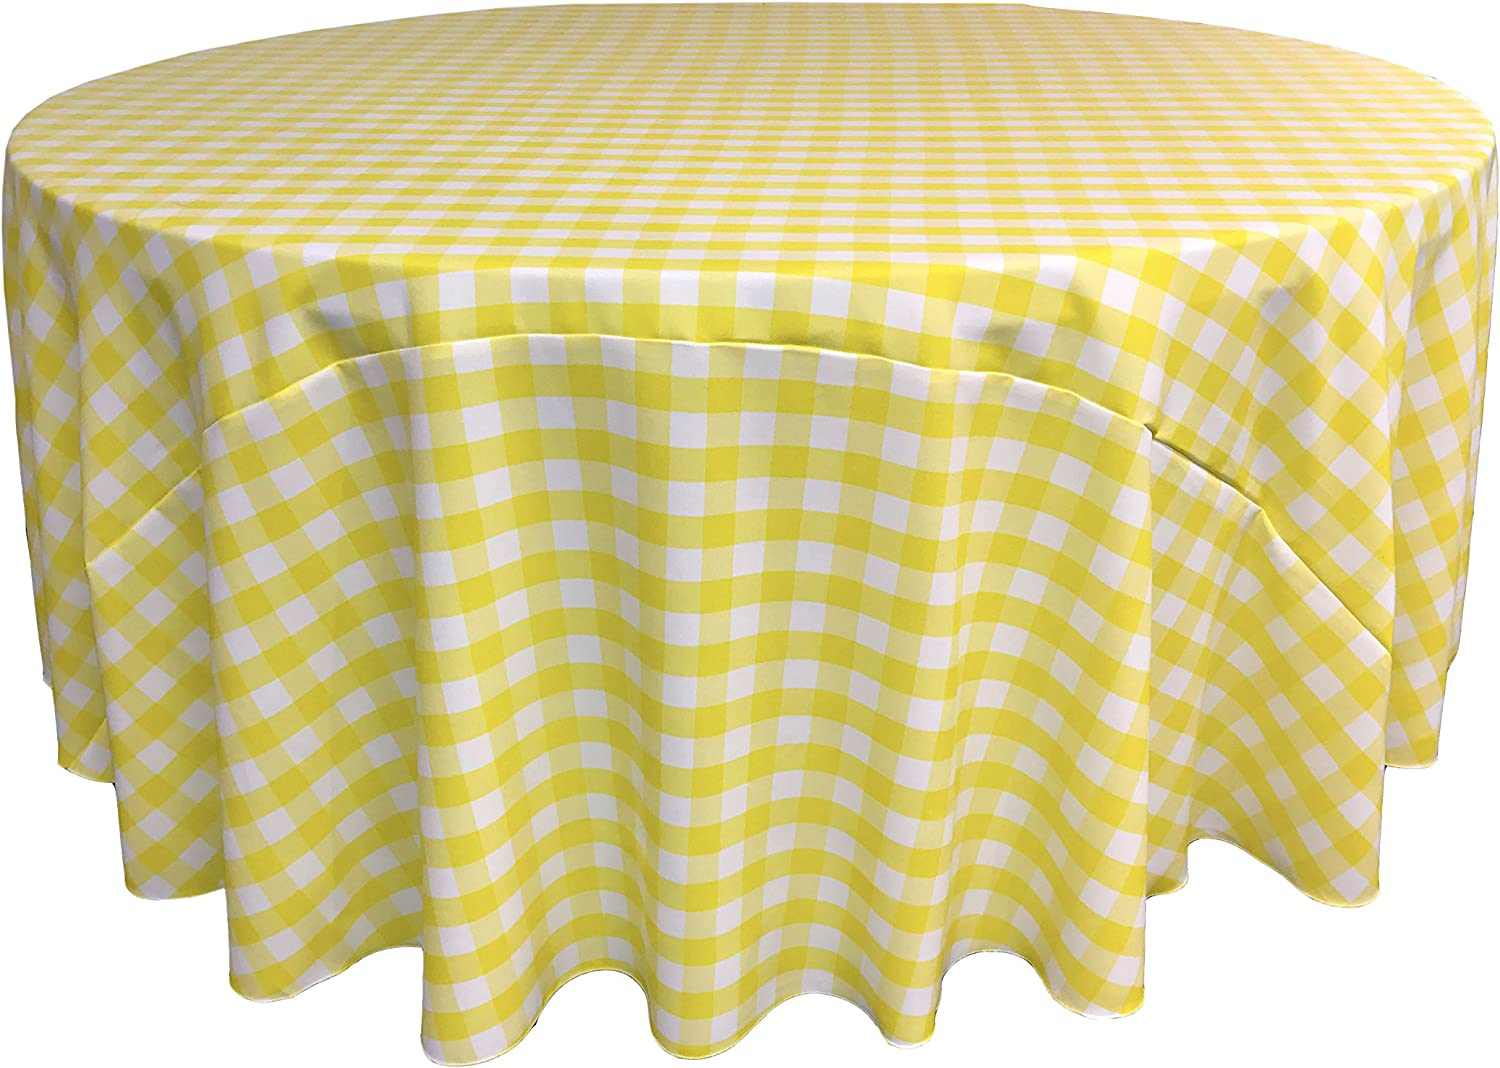 LA Linen Poly Checkered Round Tablecloth, 108-Inch, Light yellow White